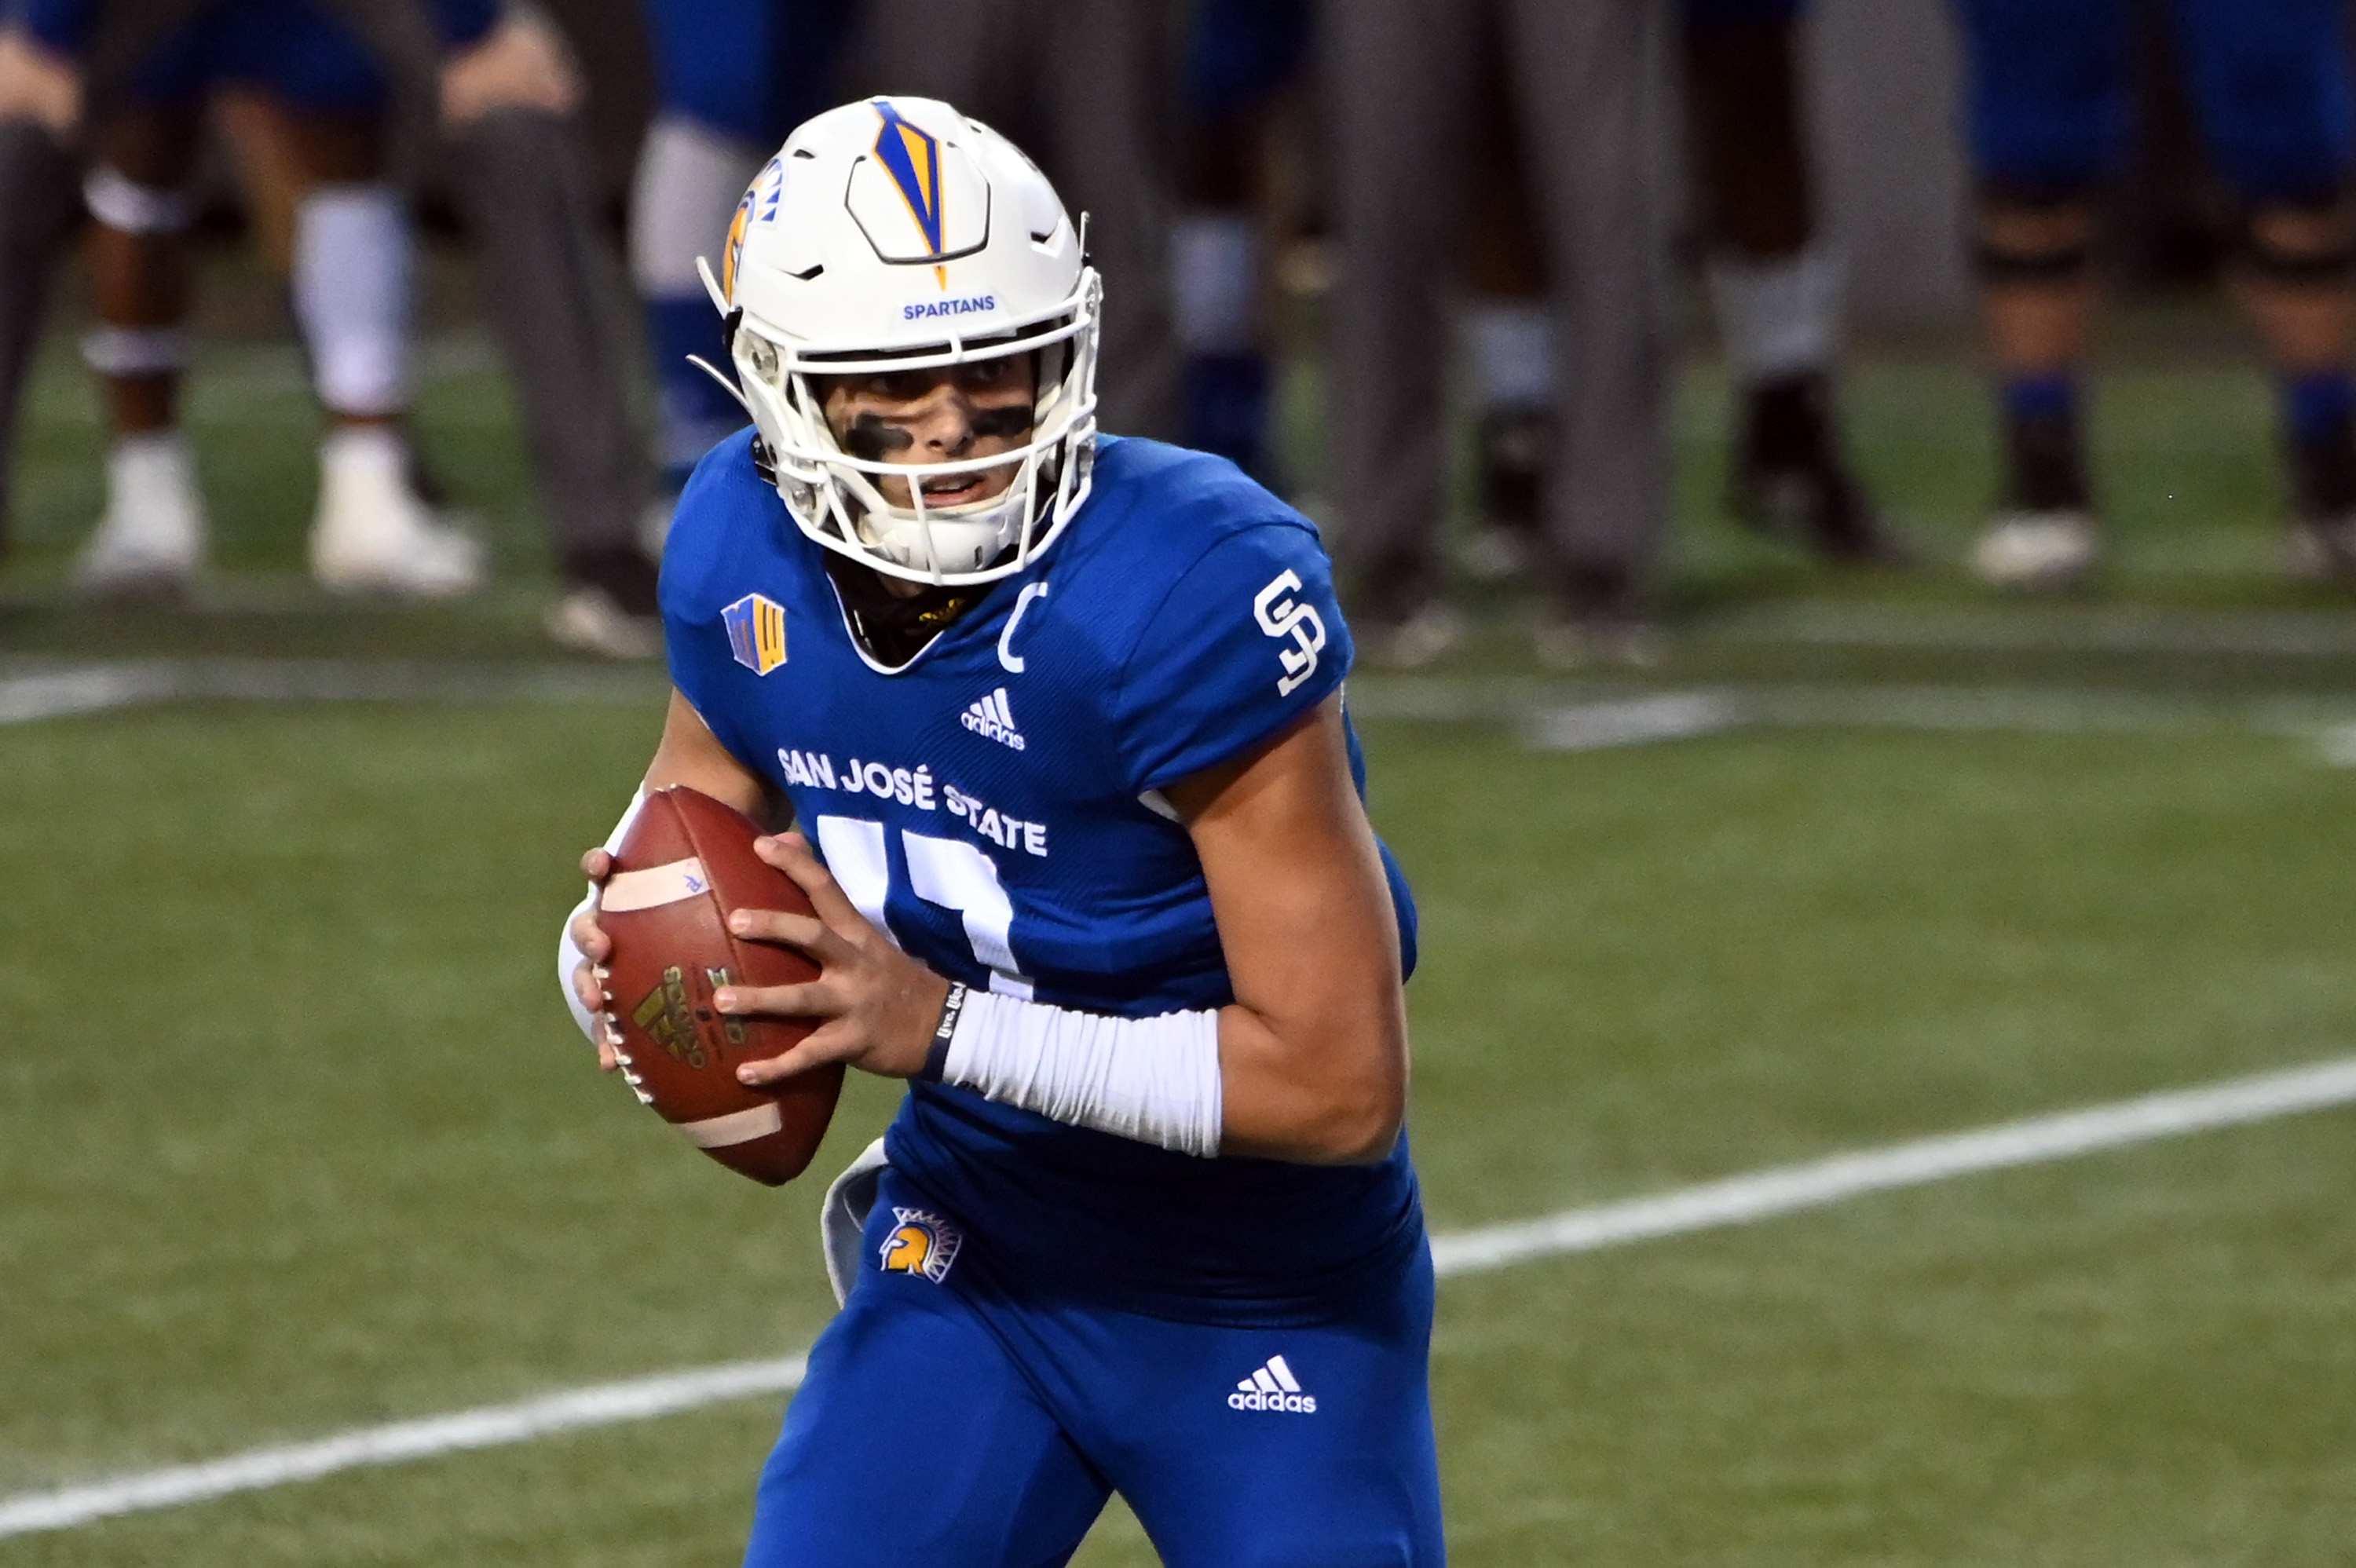 Mountain West Football Championship - Boise State v San Jose State